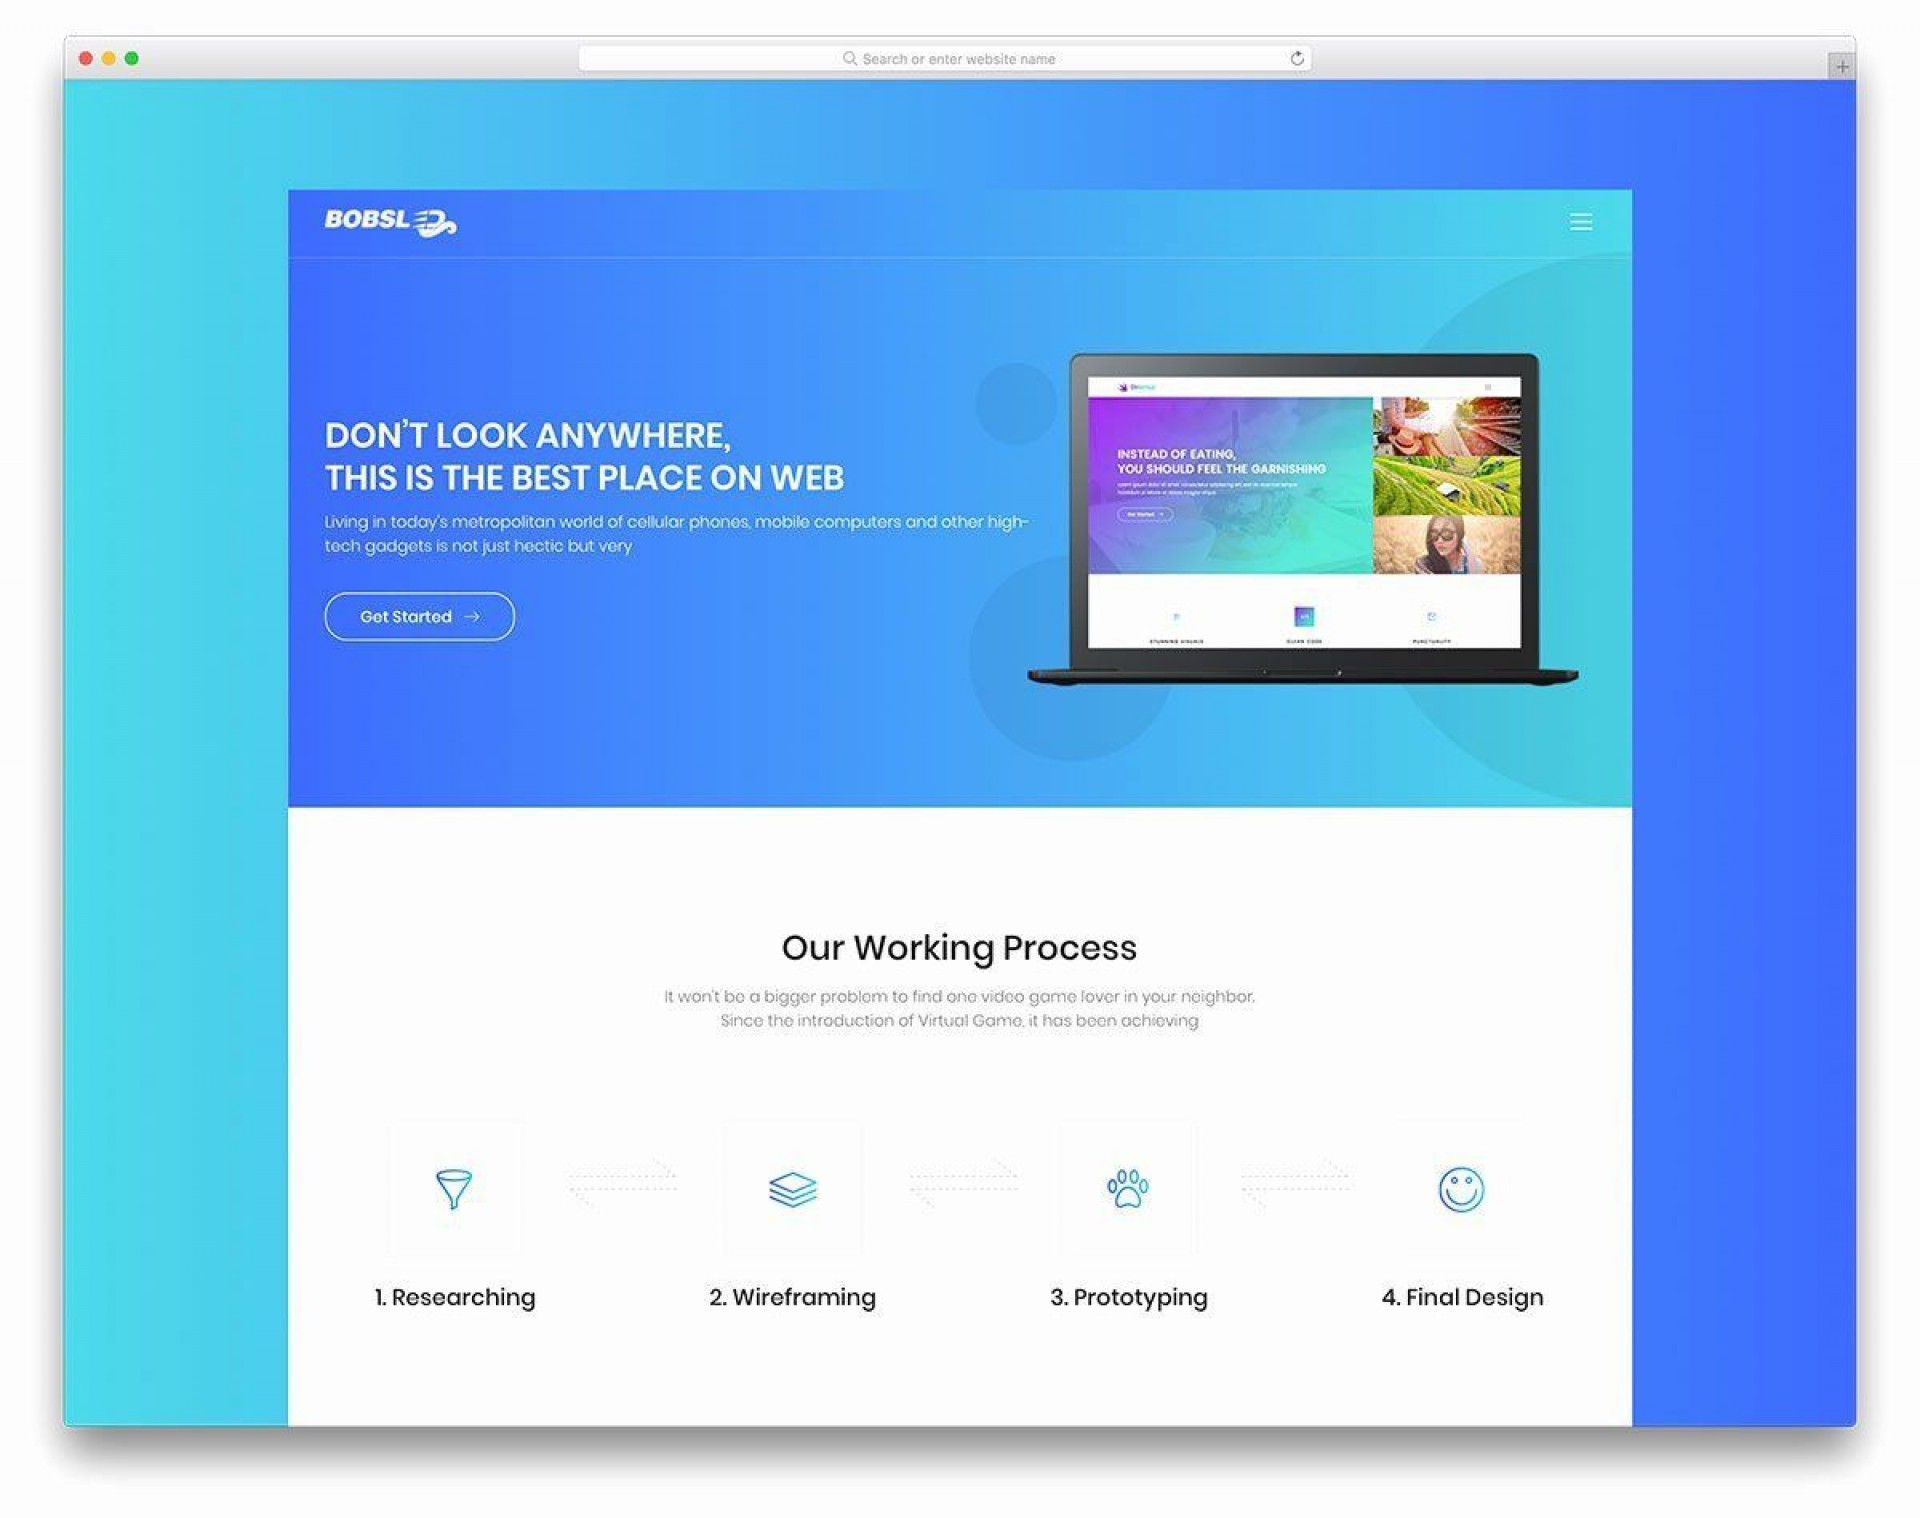 001 Fantastic Simple Web Page Template Free Download Photo  One Website Html With Cs1920